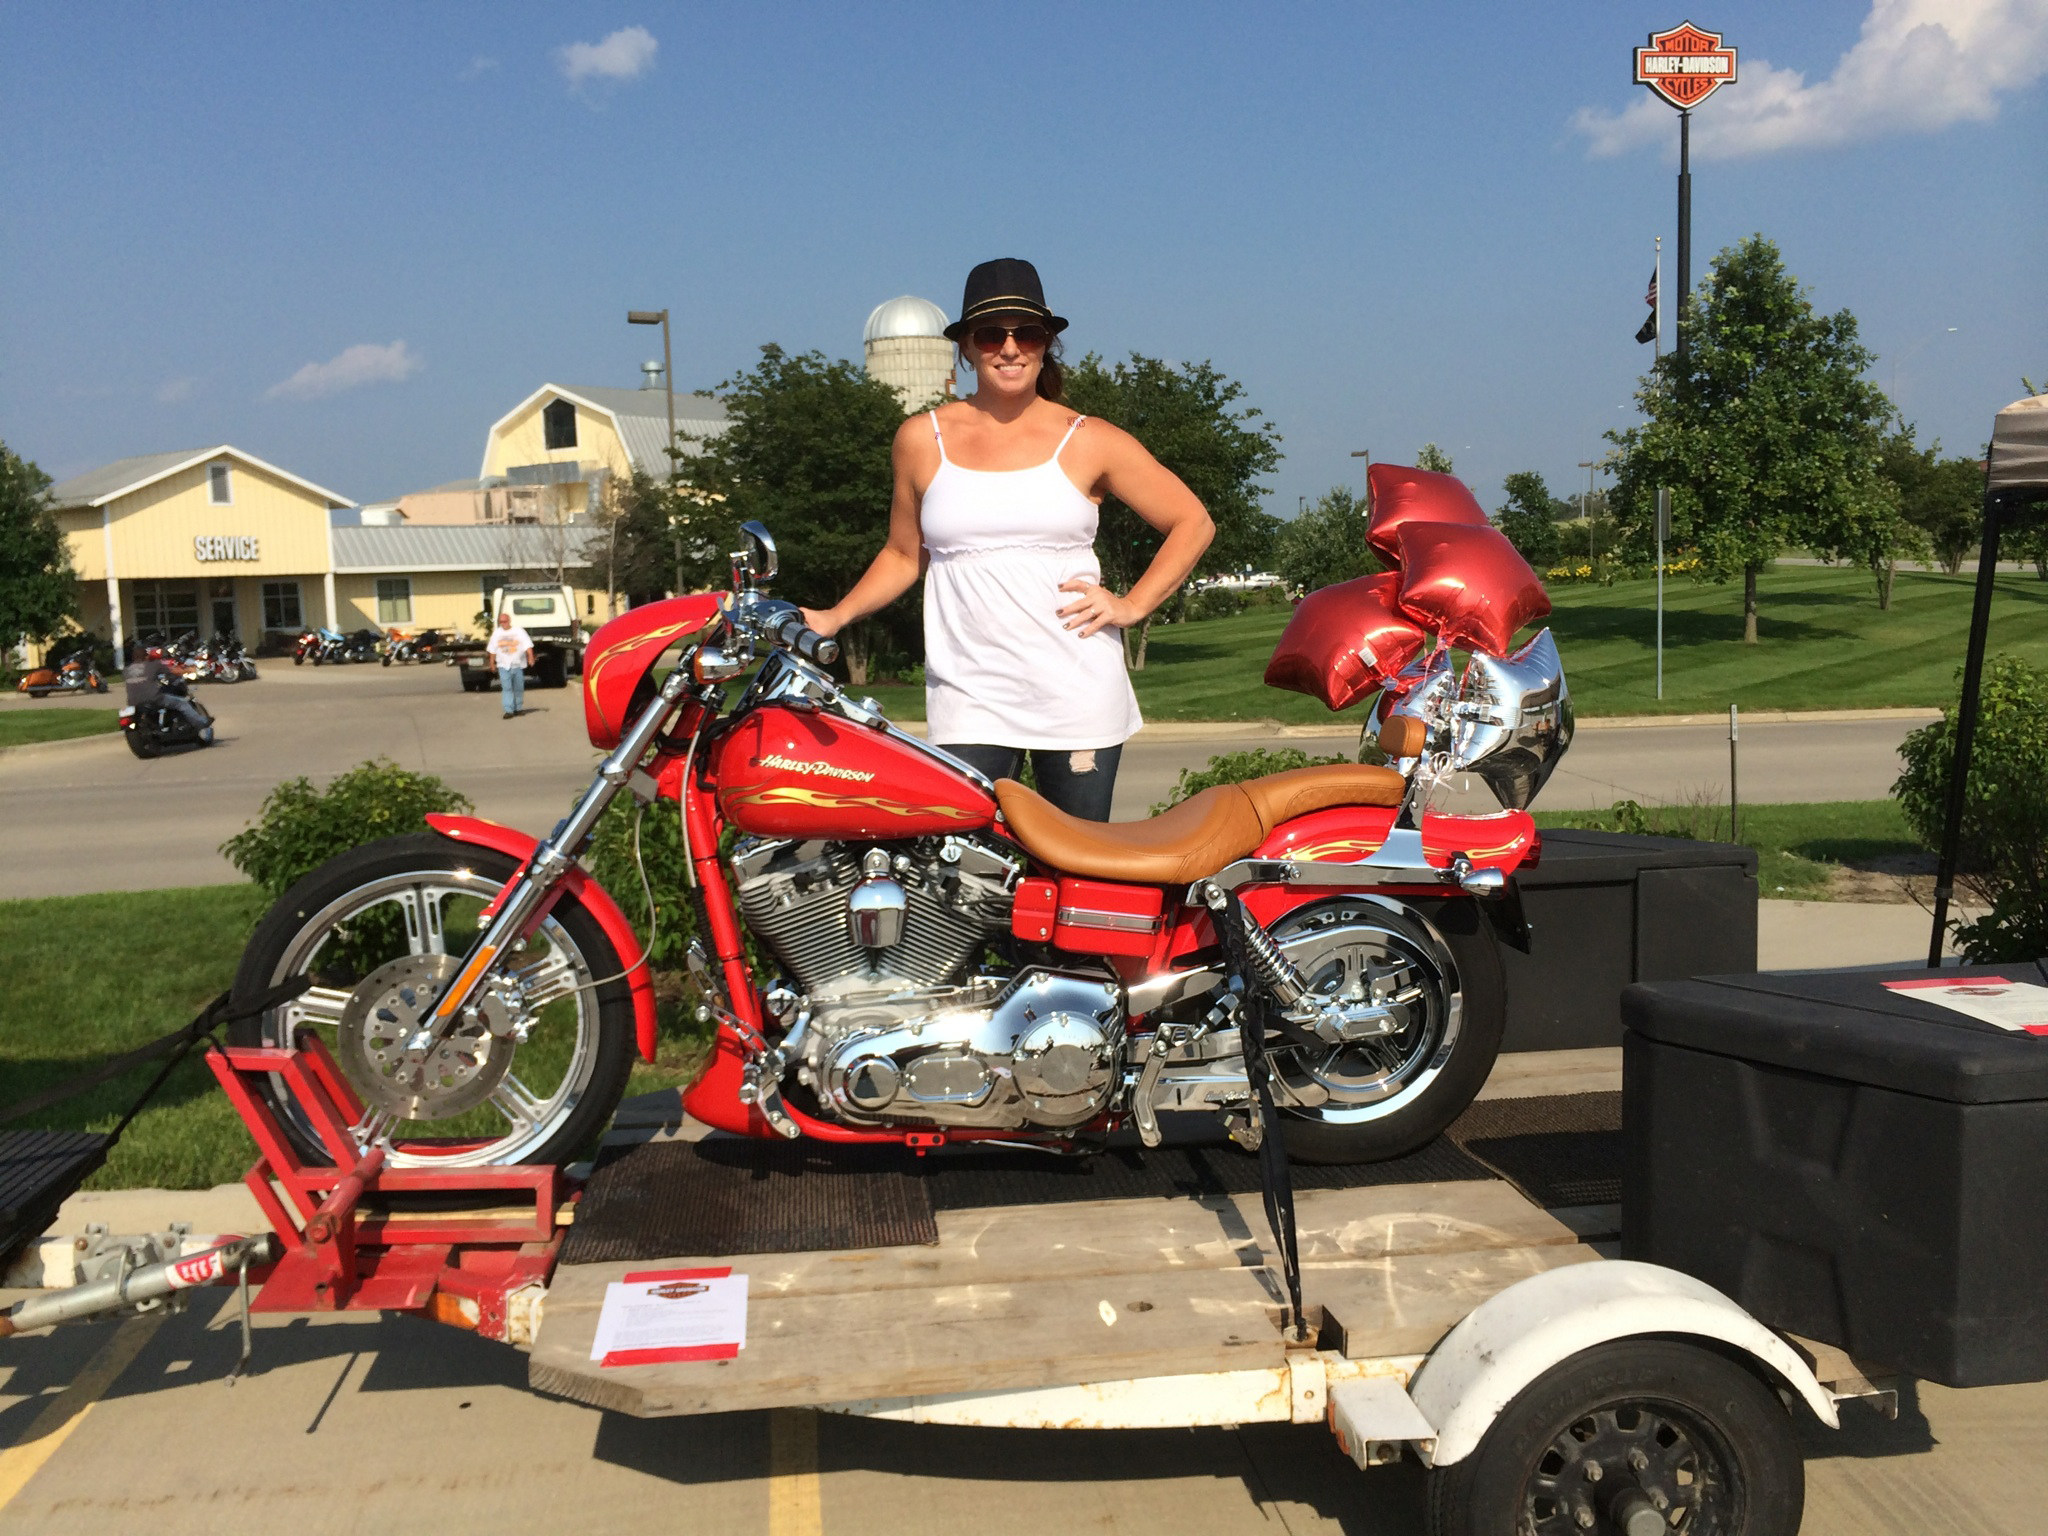 ... pictured with the custom-edition Harley-Davidson Dyna Wide Glide II